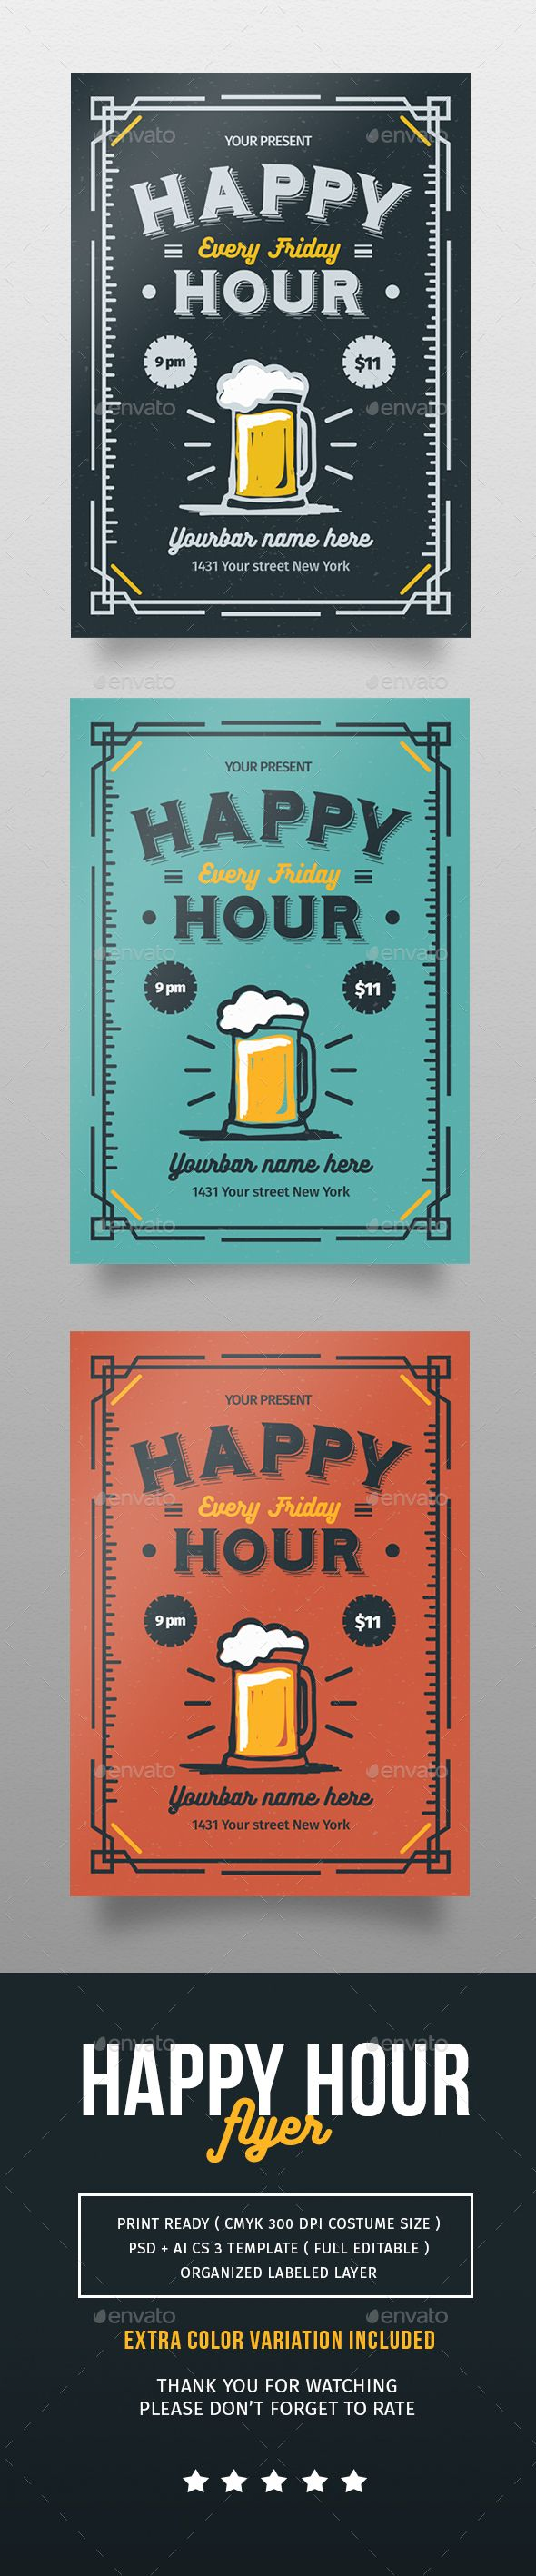 Happy Hour Flyer Template PSD #design Download: http://graphicriver.net/item/happy-hour-flyer/14145256?ref=ksioks